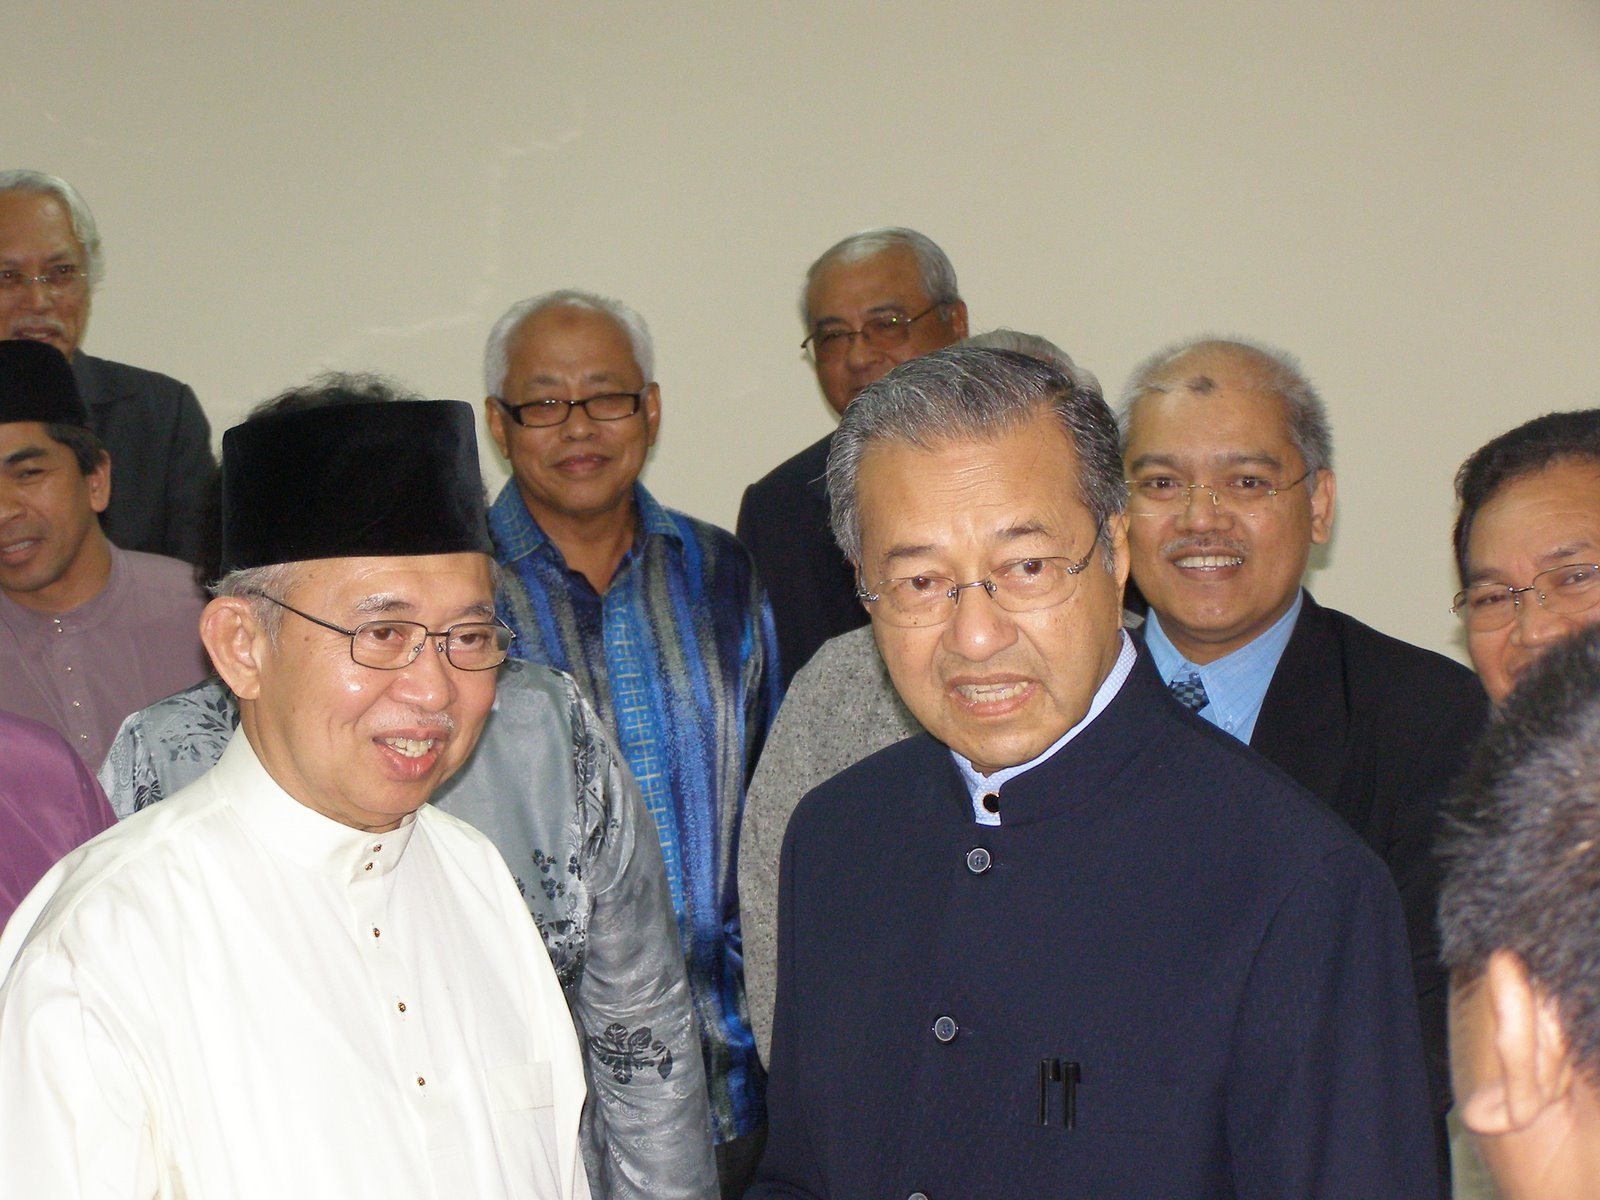 Tengku Razaleigh and Mahathir in more recent times. Pic from TV14